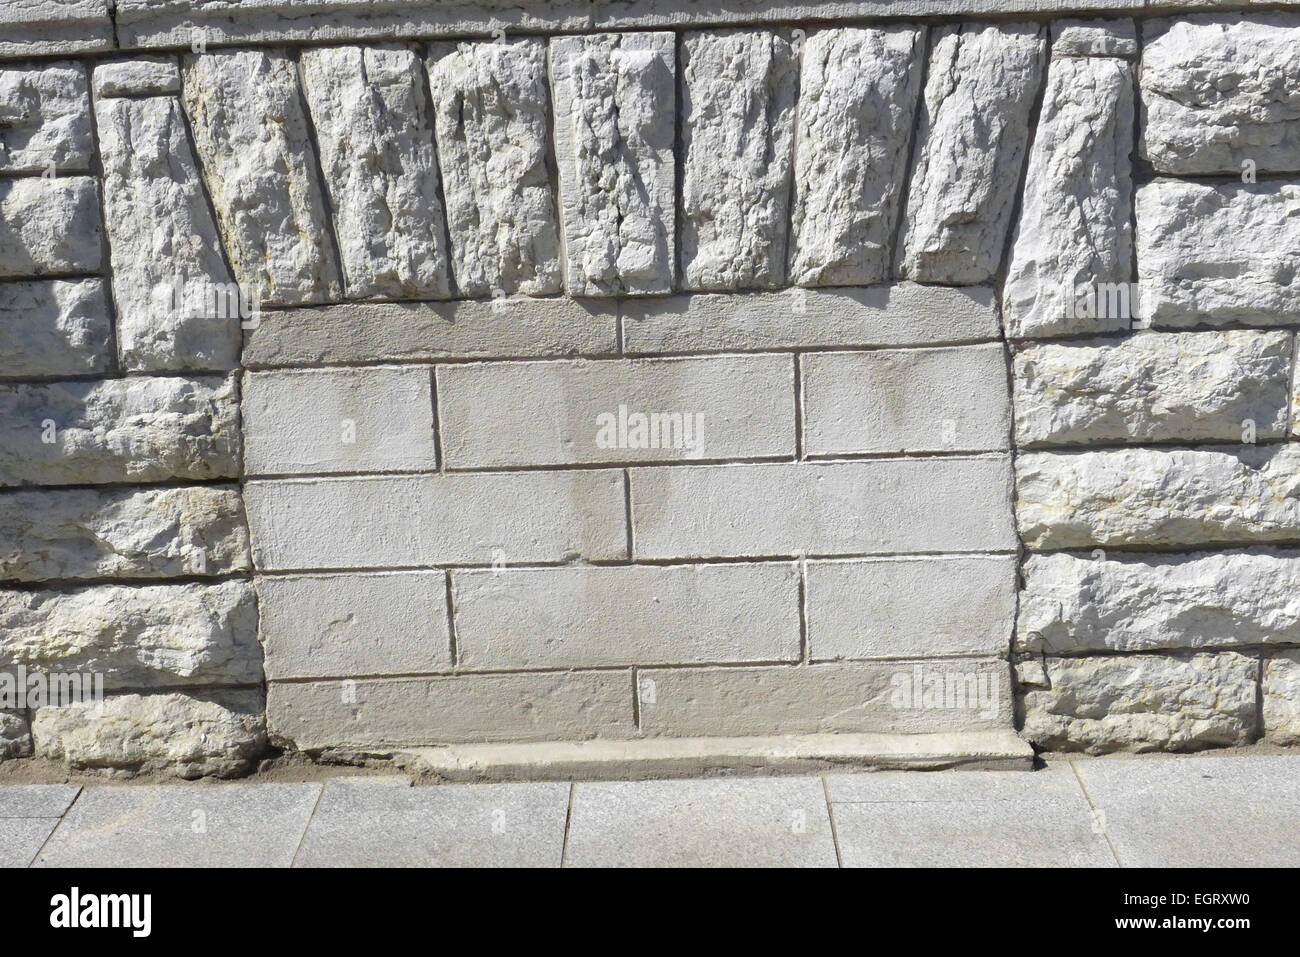 A cellar window of the former KGB building at 59 Pikk Street in Tallinn Estonia cemented up to block sounds of torture. Stock Photo